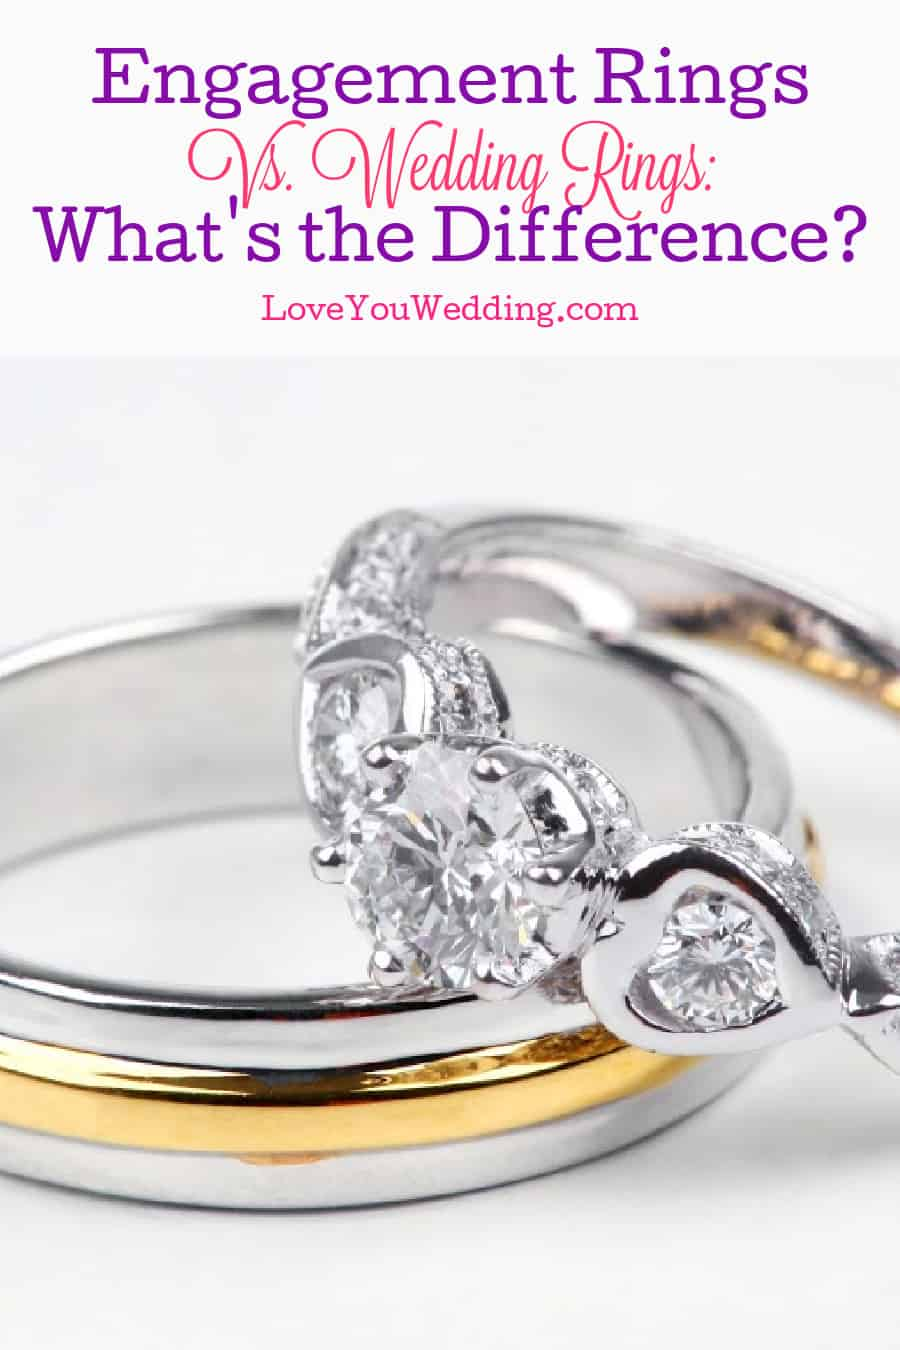 an Engagement ring vs wedding ring